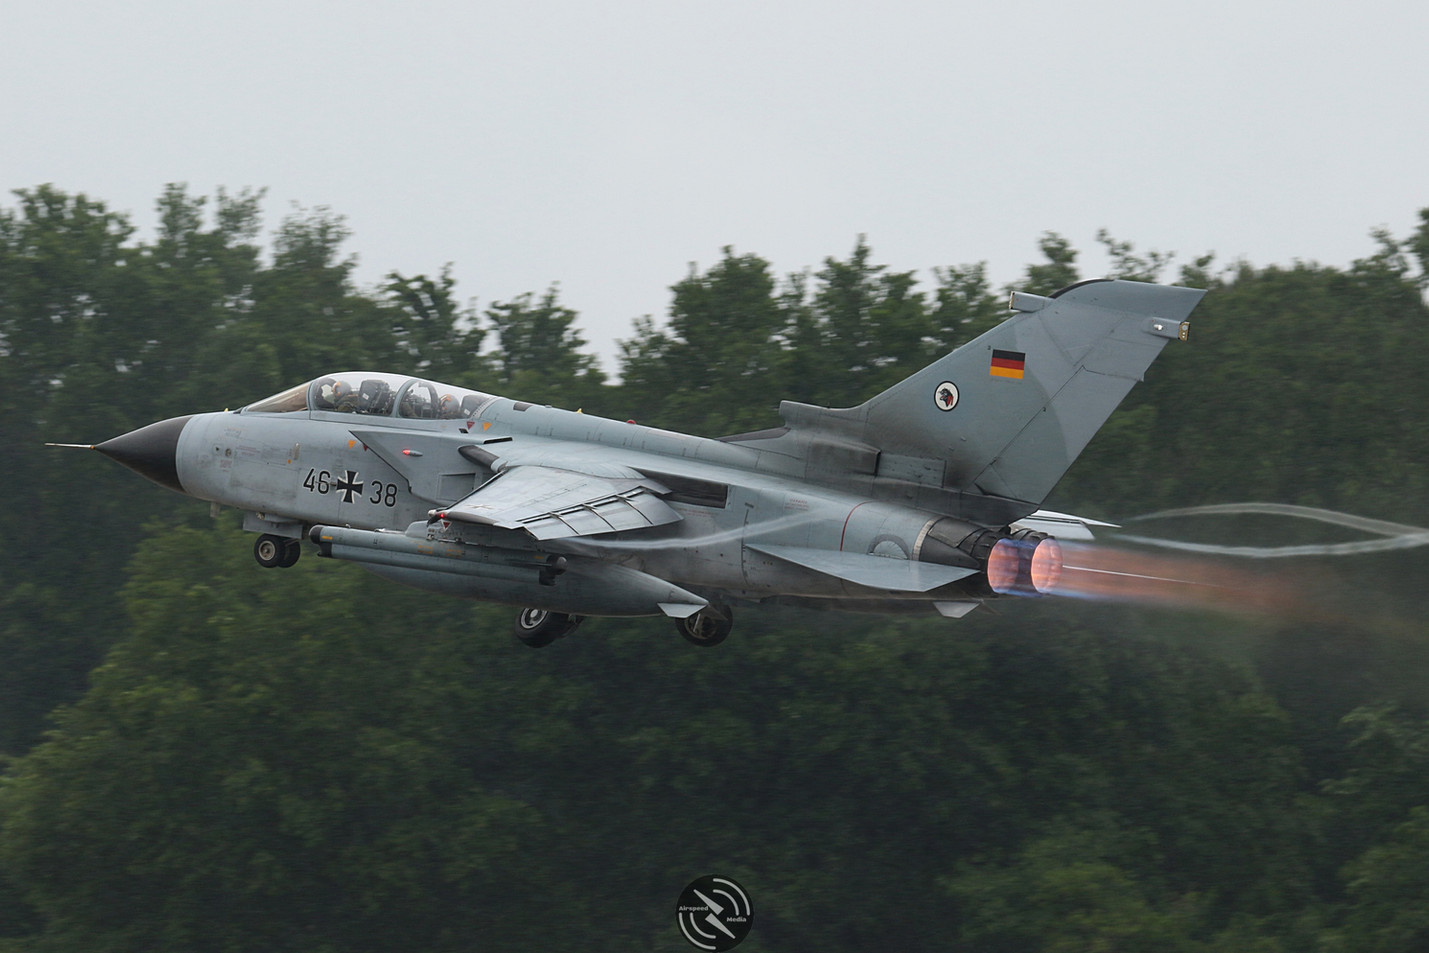 Luftwaffe Tornado NATO Tiger Meet 2019 (